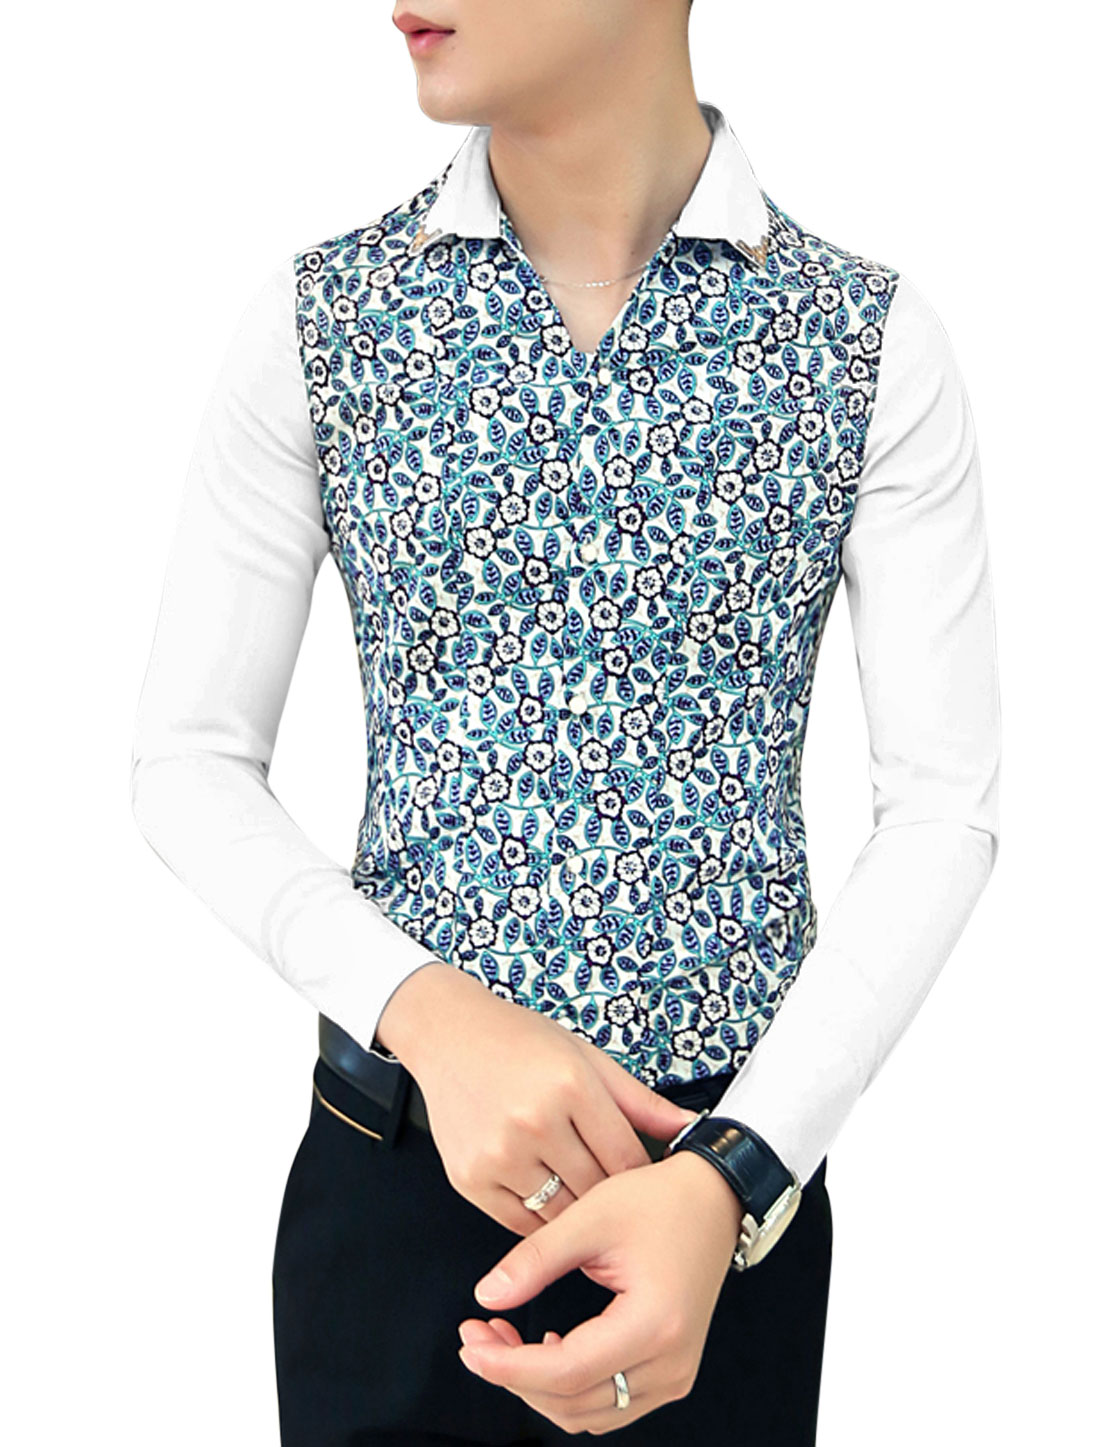 Men NEW Buttoned Cuffs Contrast Floral Print Slim Cut Shirt Blue White M